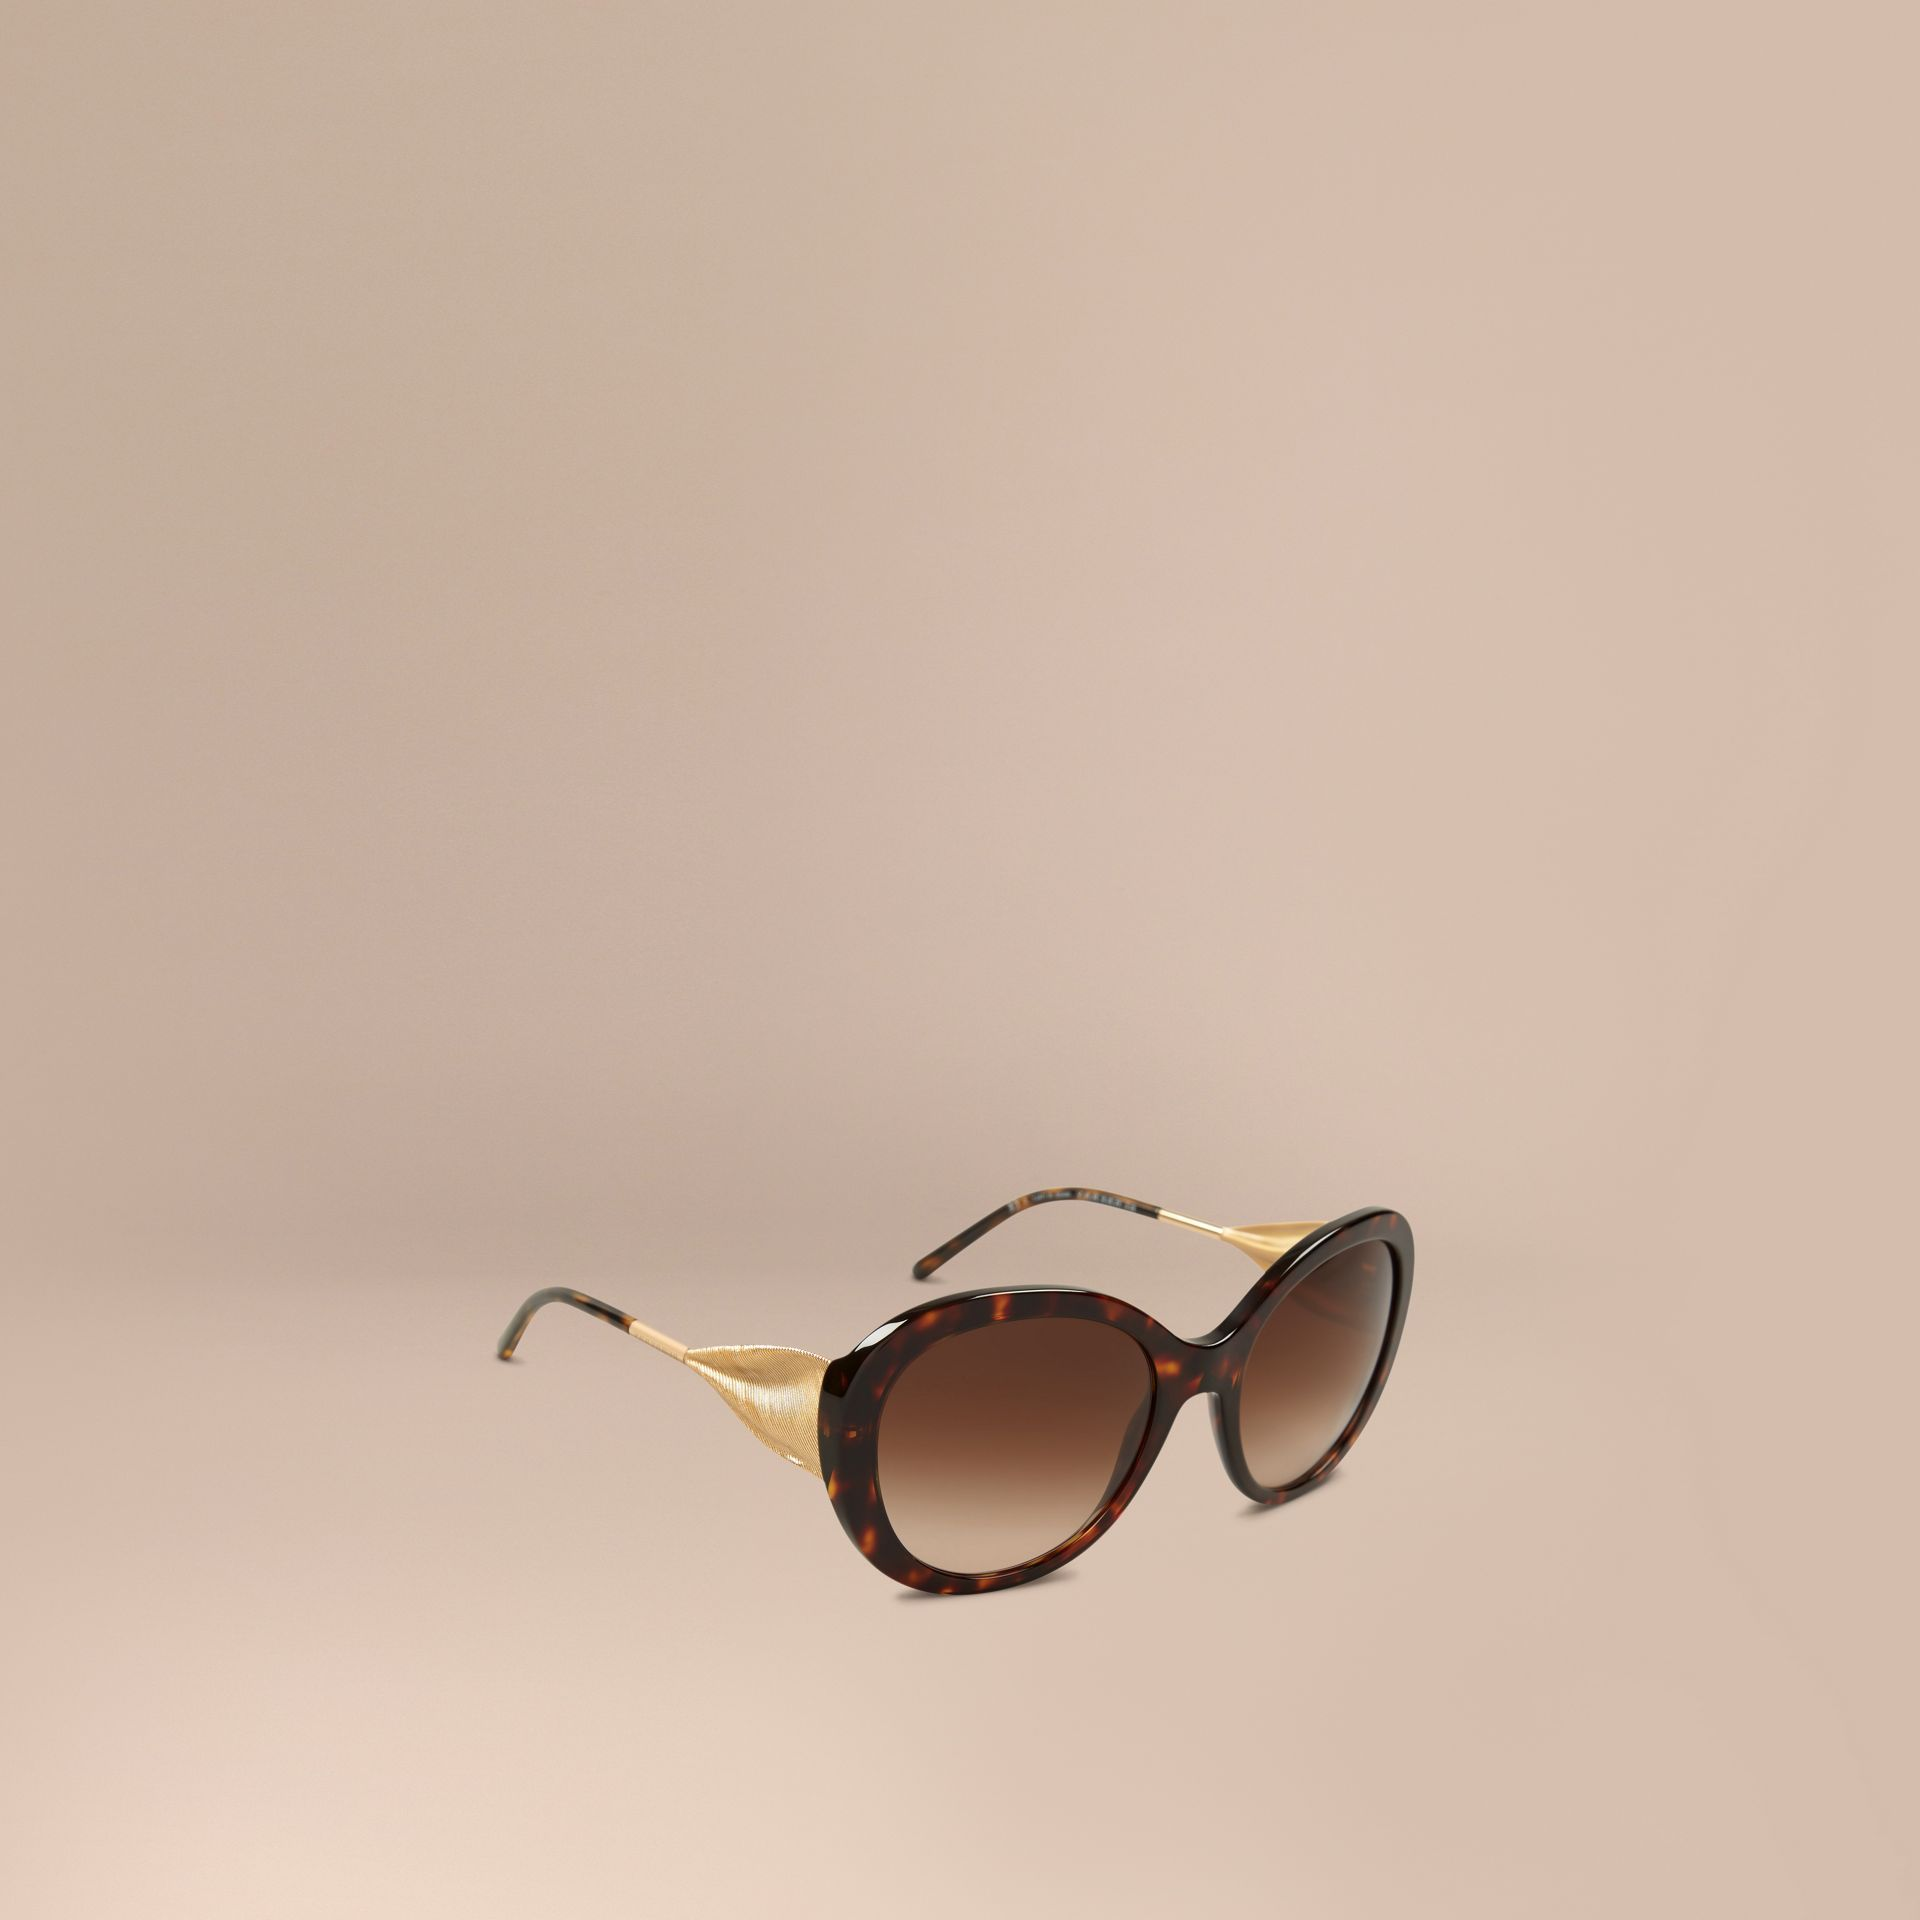 Oversize Round Frame Sunglasses in Ebony - Women | Burberry - gallery image 1